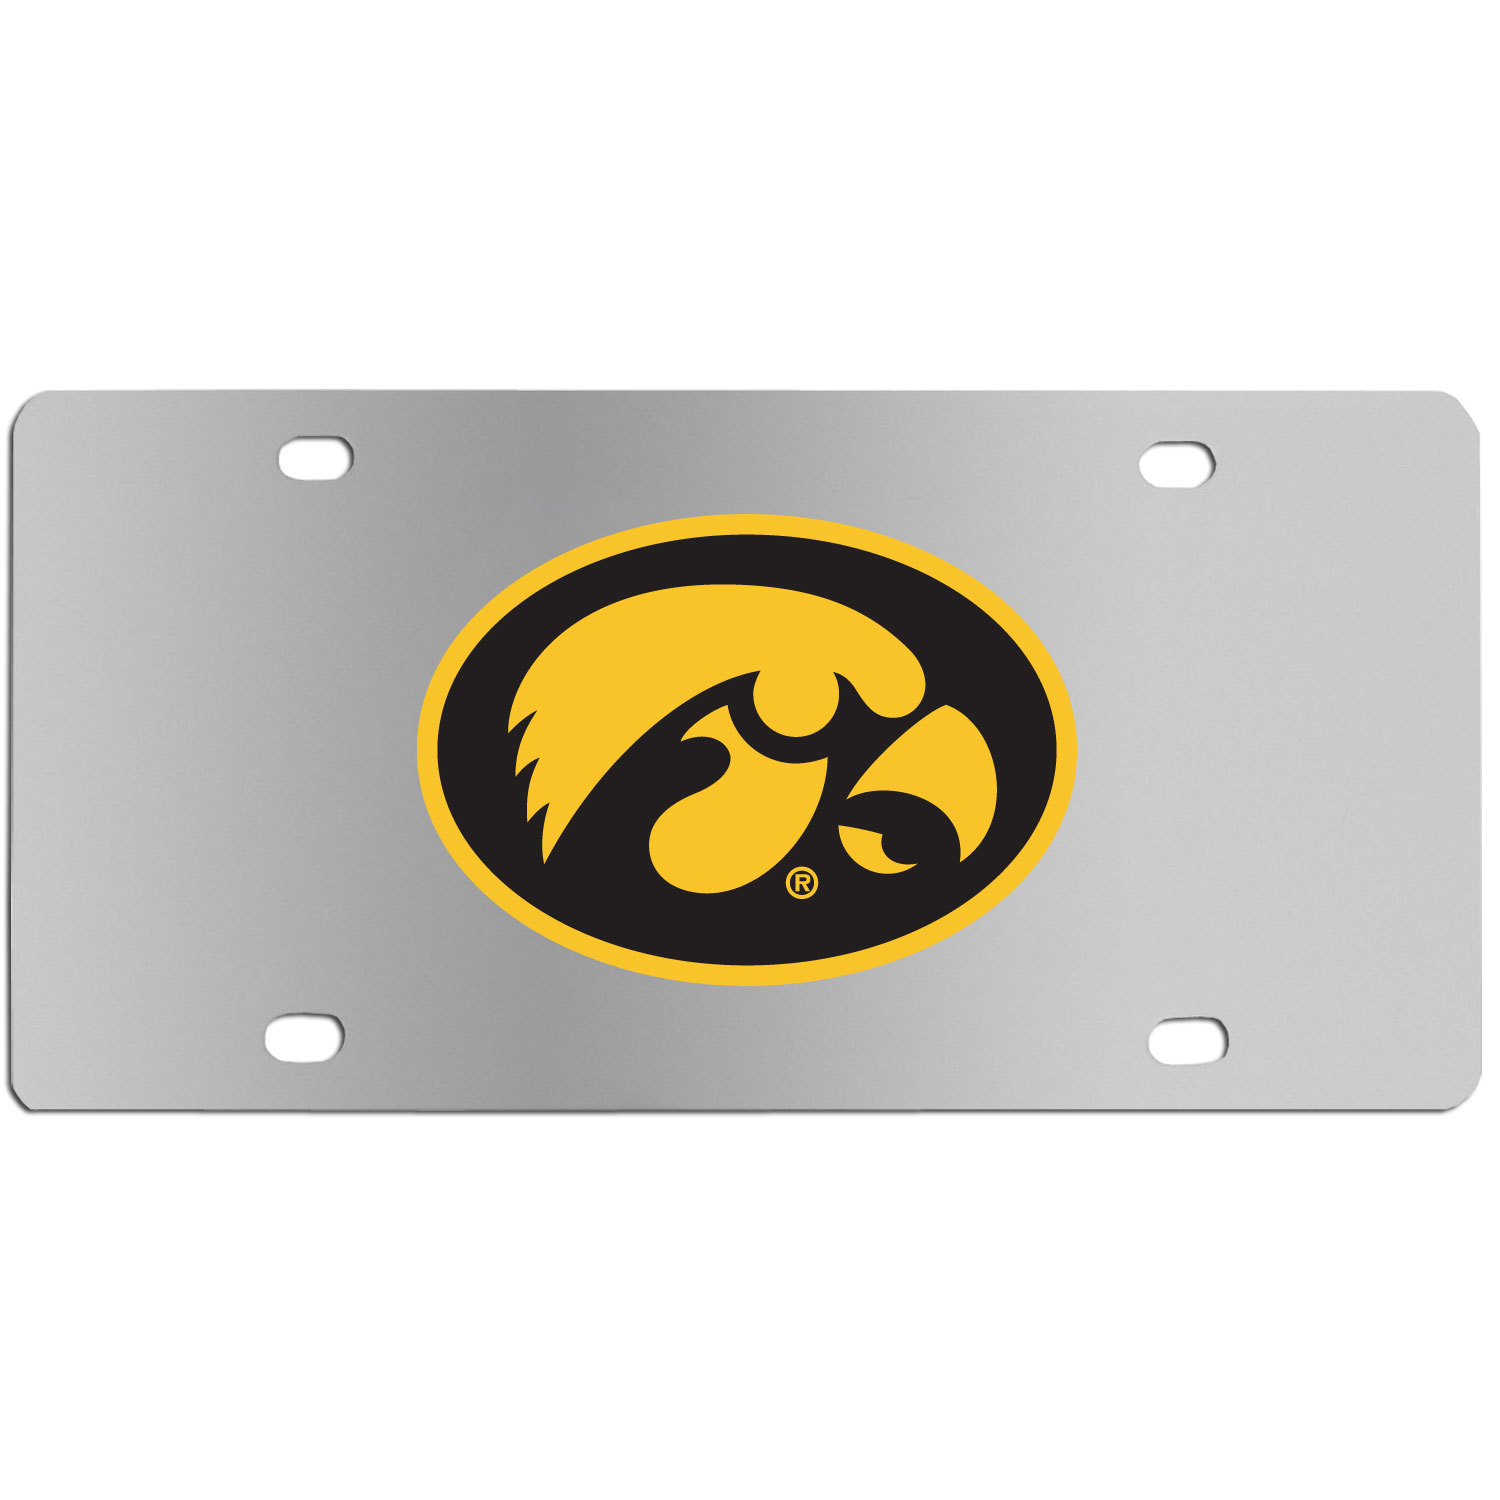 Iowa Hawkeyes Steel License Plate Wall Plaque - This high-quality stainless steel license plate features a detailed team logo on a the polished surface. The attractive plate is perfect for wall mounting in your home or office to become the perfect die-hard Iowa Hawkeyes fan decor.